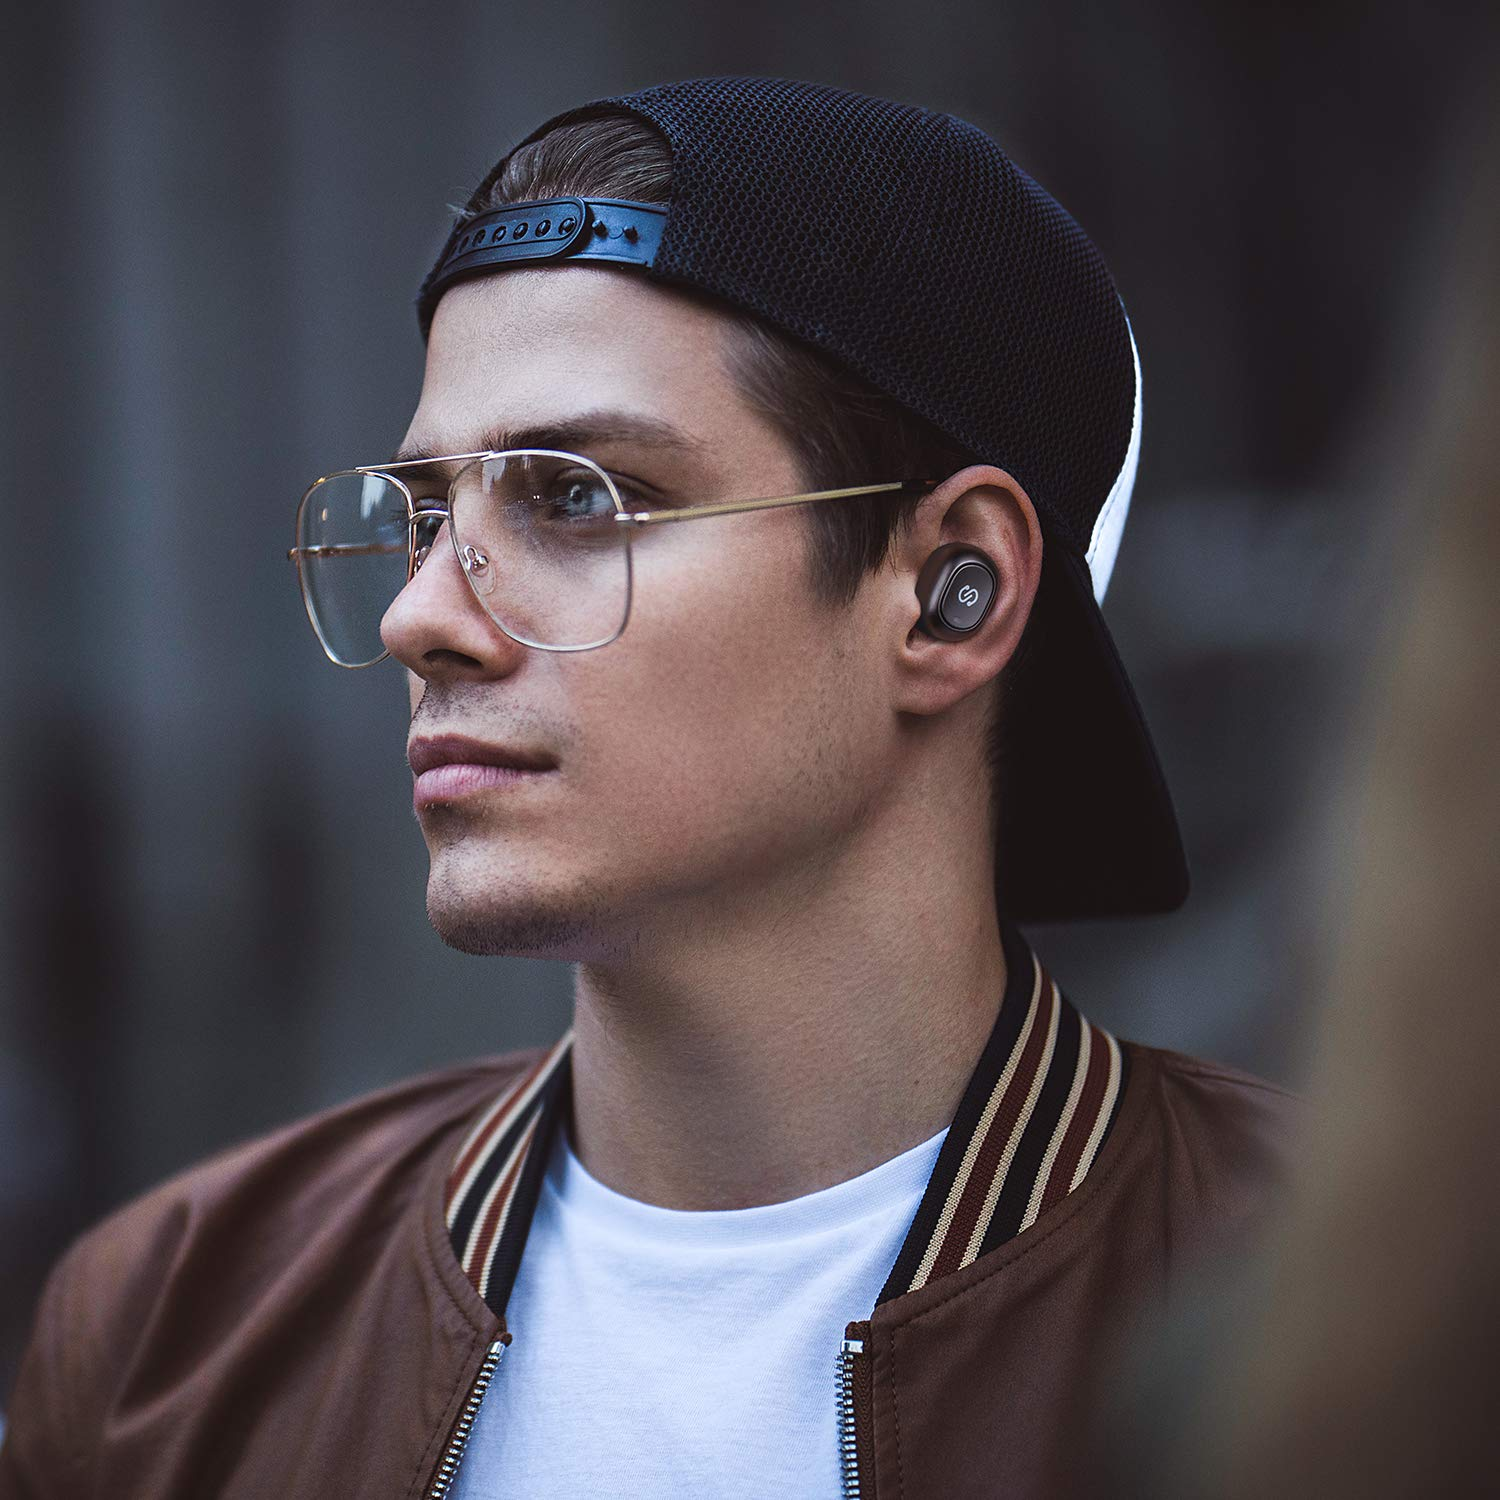 SoundPEATS True Wireless Bluetooth Earbuds in-Ear Stereo Bluetooth Headphones Wireless Earphones (Bluetooth 5.0, Built-in Mic, Stereo Calls, Total 15 Hours Playtime) by SoundPEATS (Image #7)